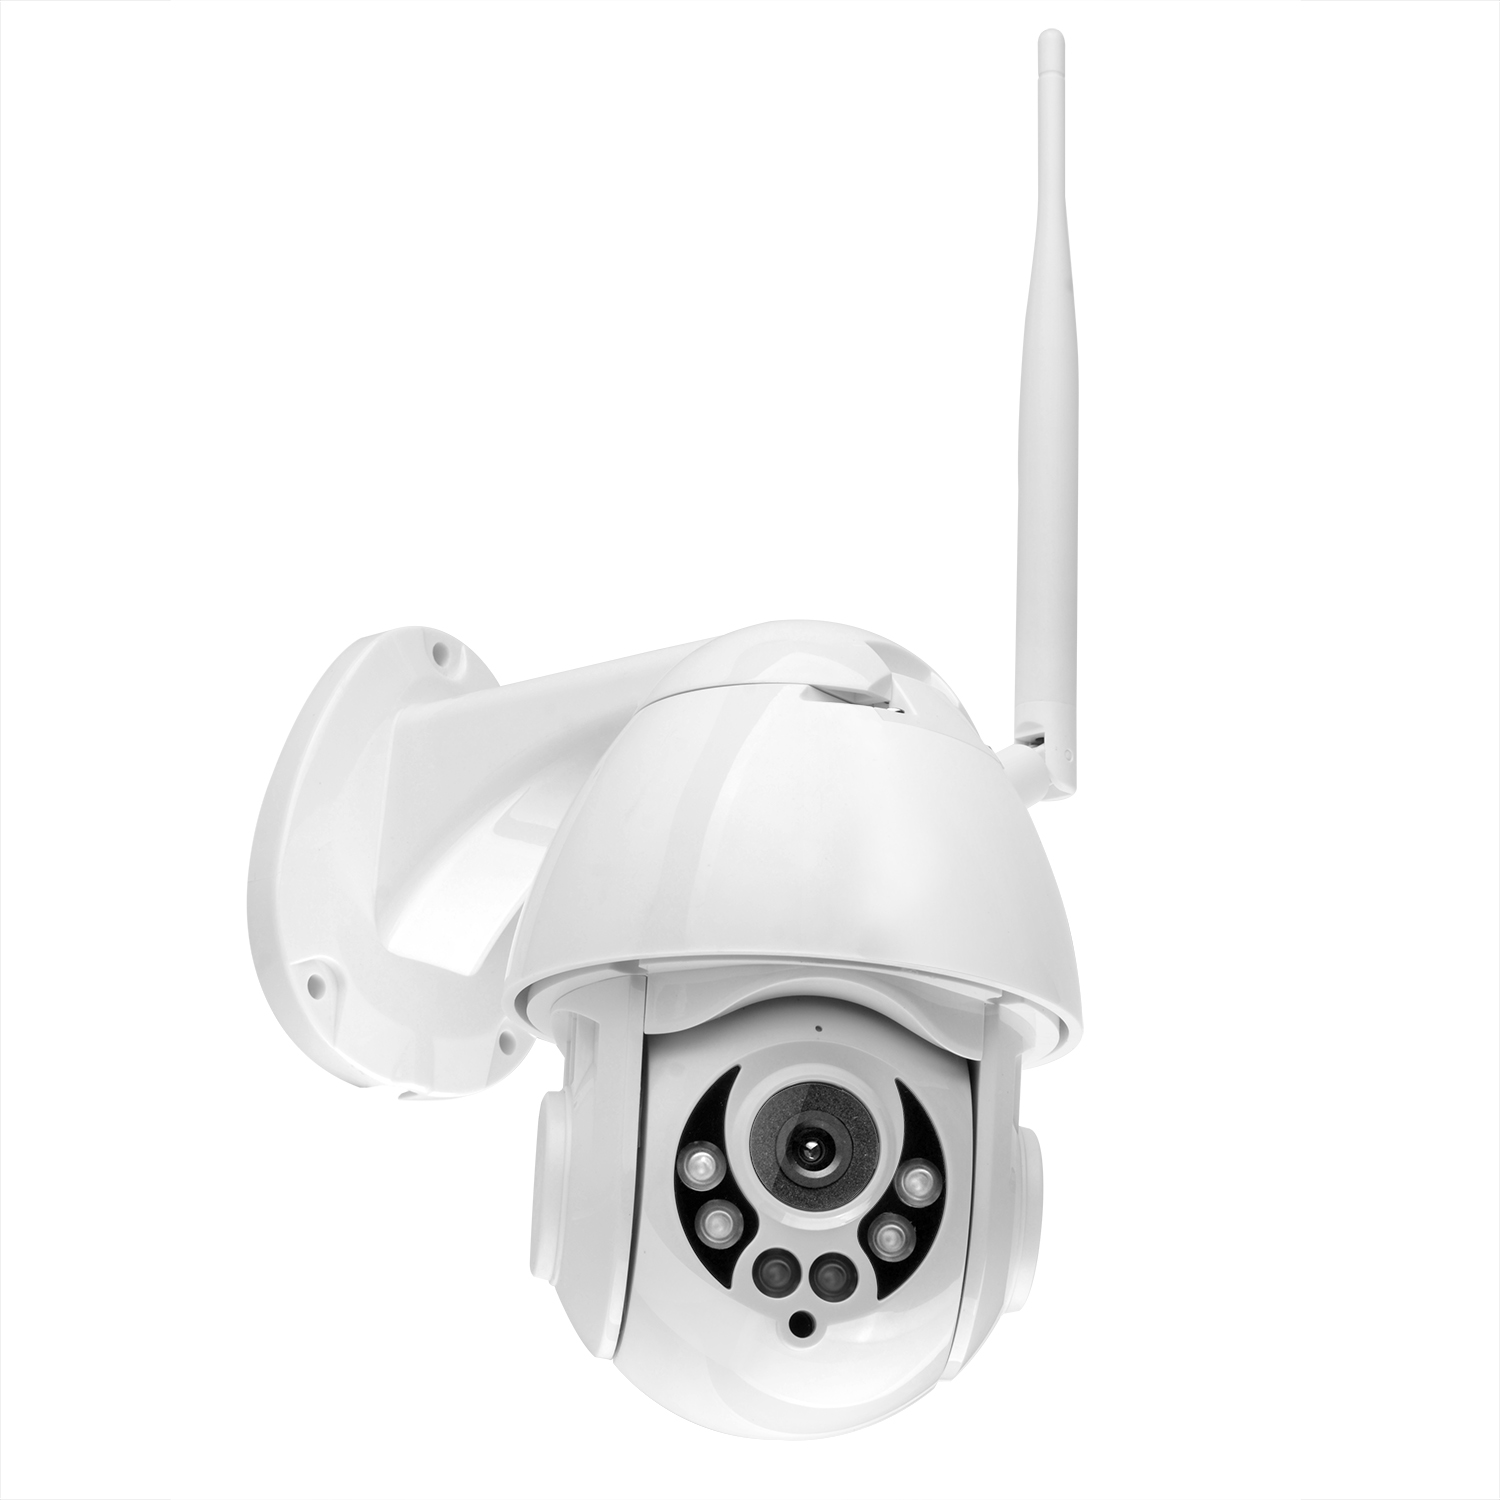 Wanscam K38D 1080P WiFi PTZ IP Camera Face Detect Auto Tracking 4X Zoom Two-way Audio P2P CCTV Security Outdoor Camera UK plug